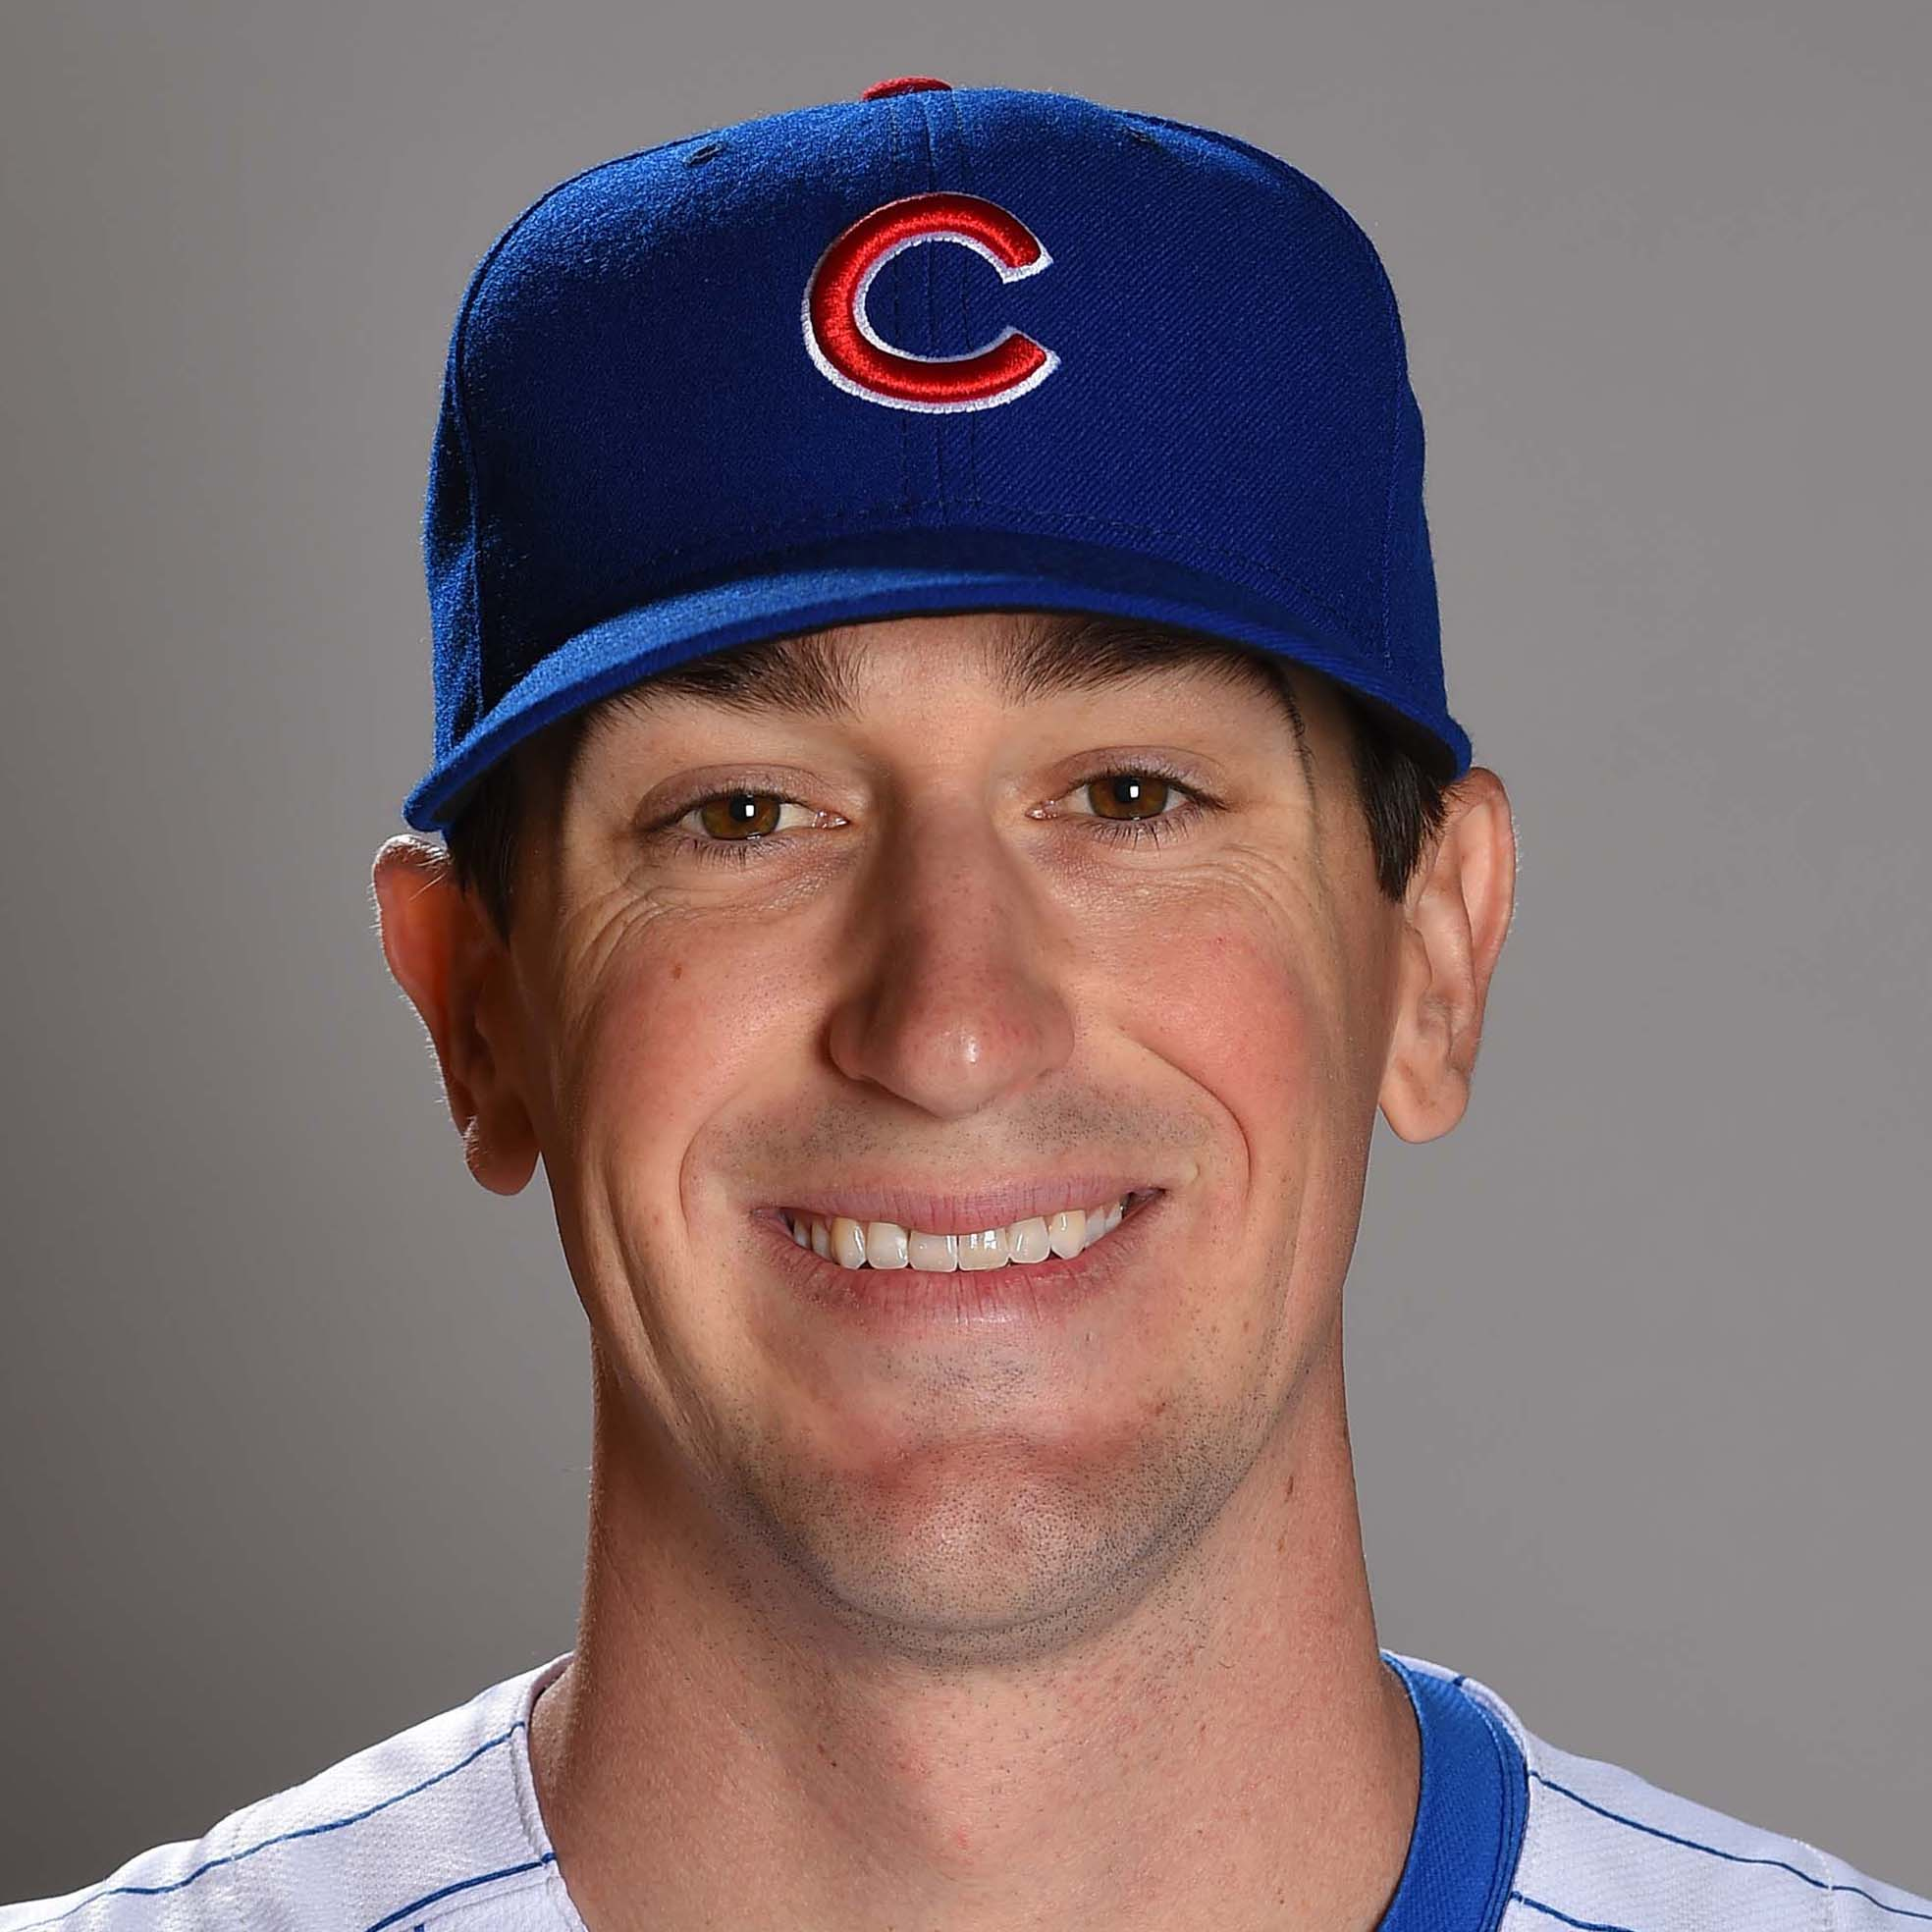 Kyle Hendricks Headshot